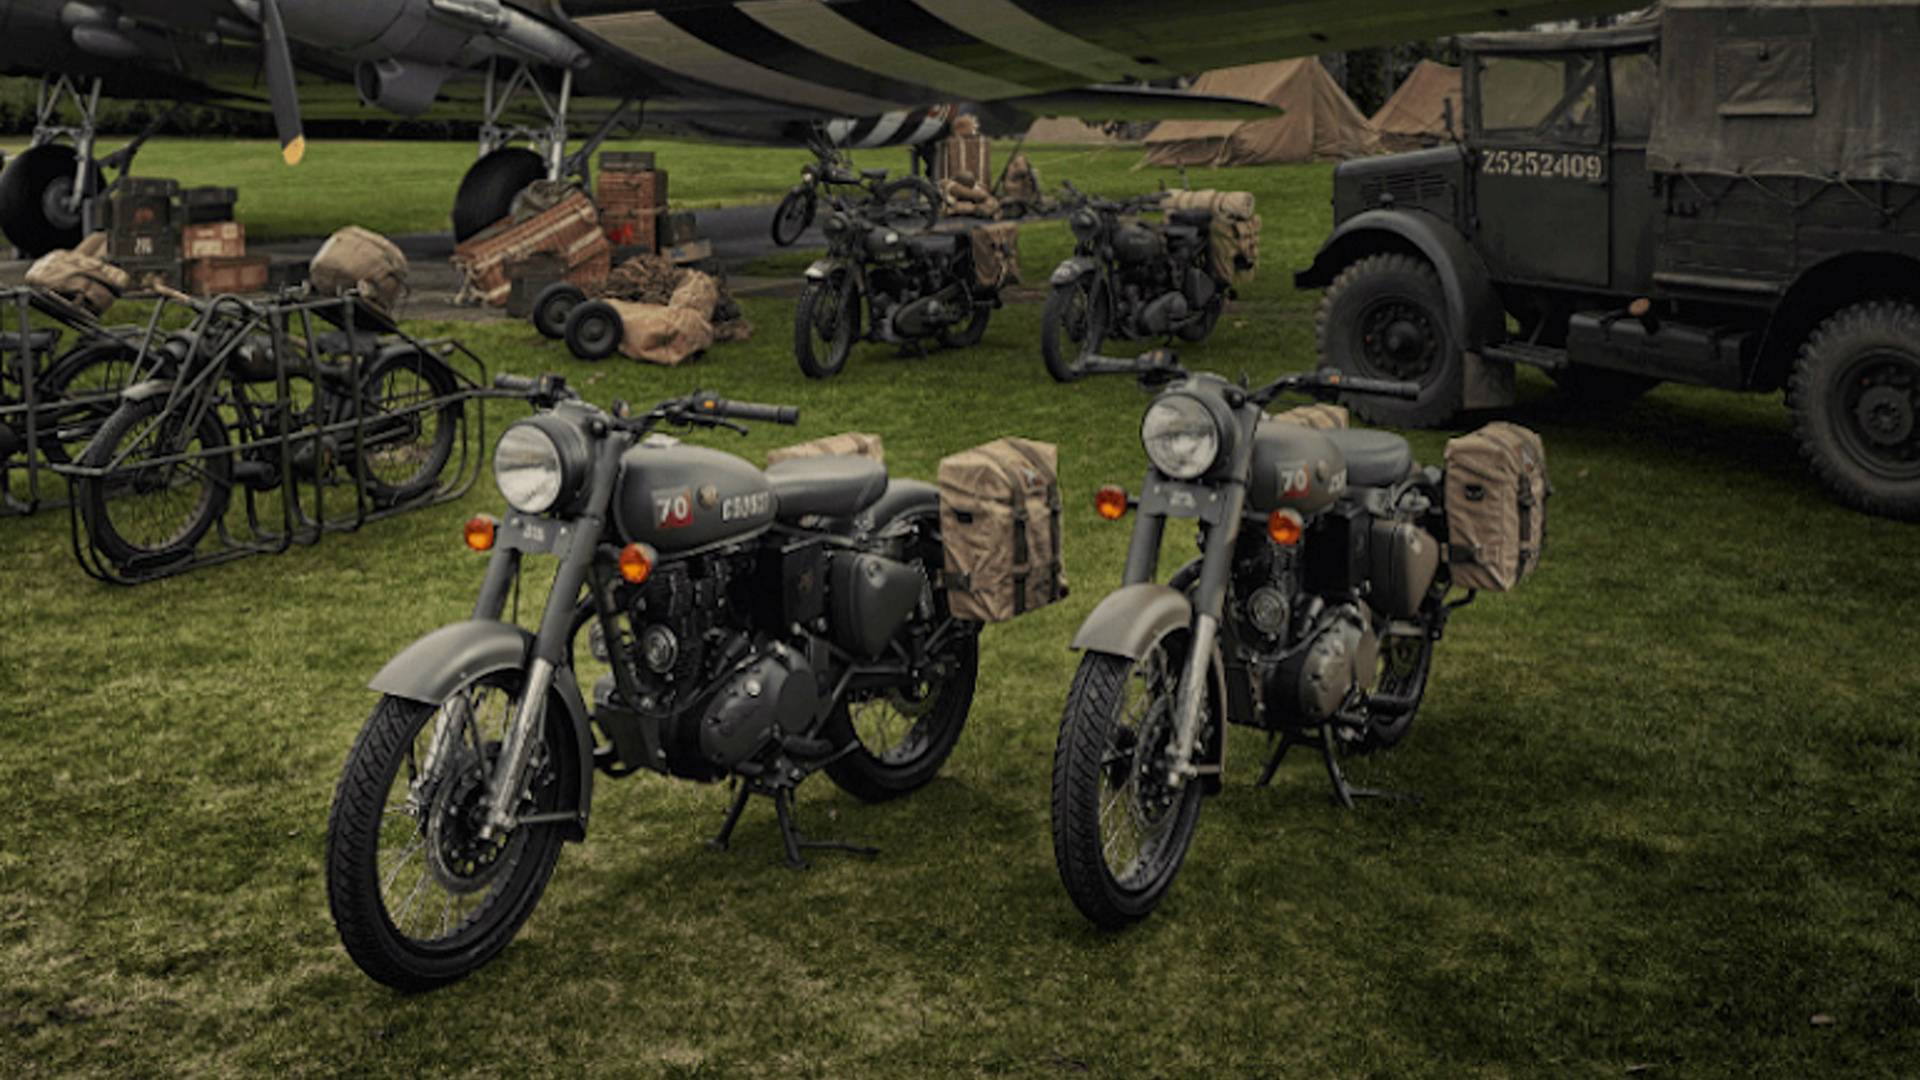 VE Day: The Flying Flea was Royal Enfield's secret weapon for the war